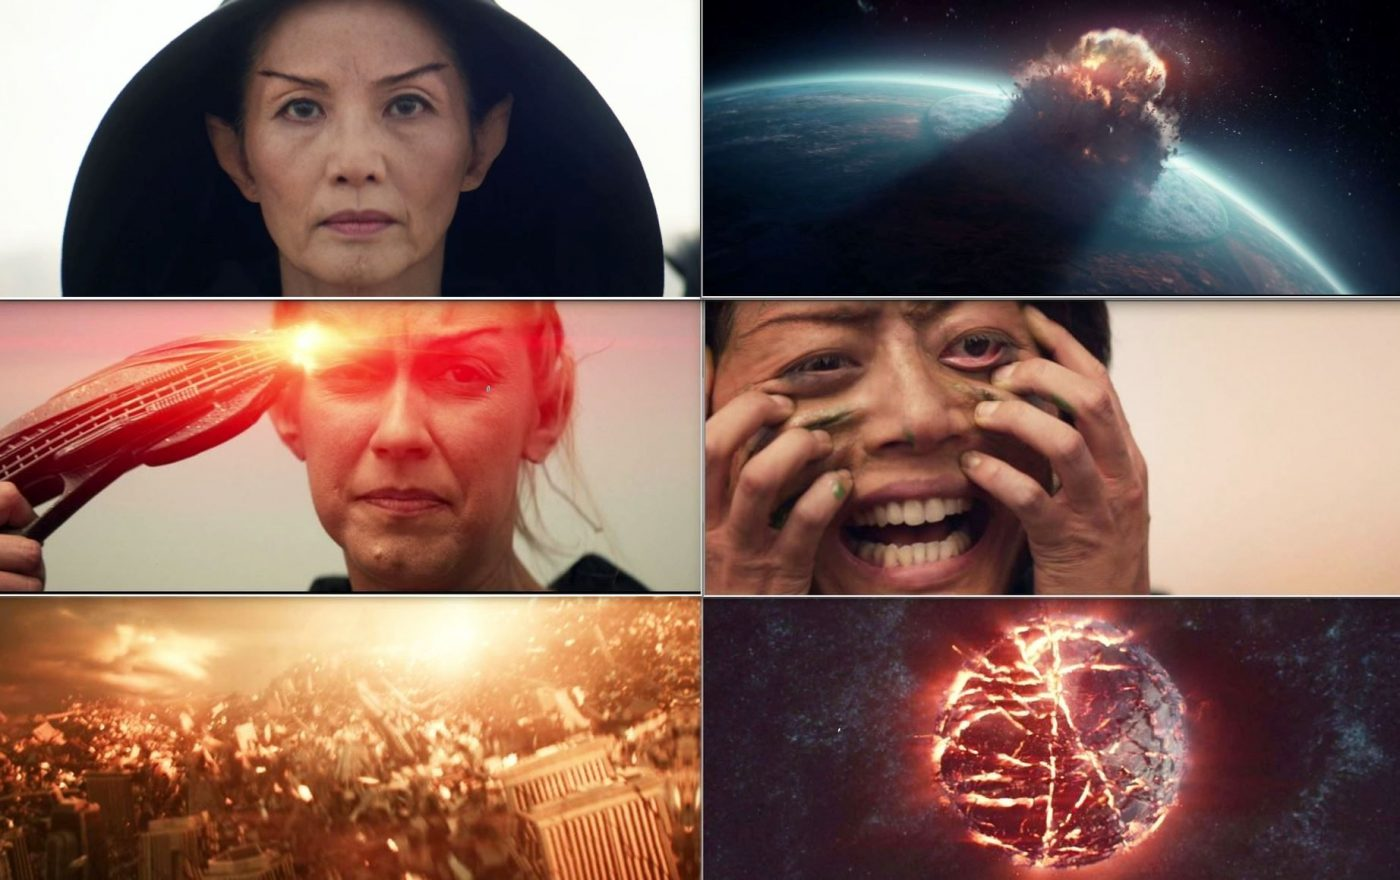 Images that are shown in the mind-meld. - STPC 011 - Star Trek: Picard - S1E7 (04:15)